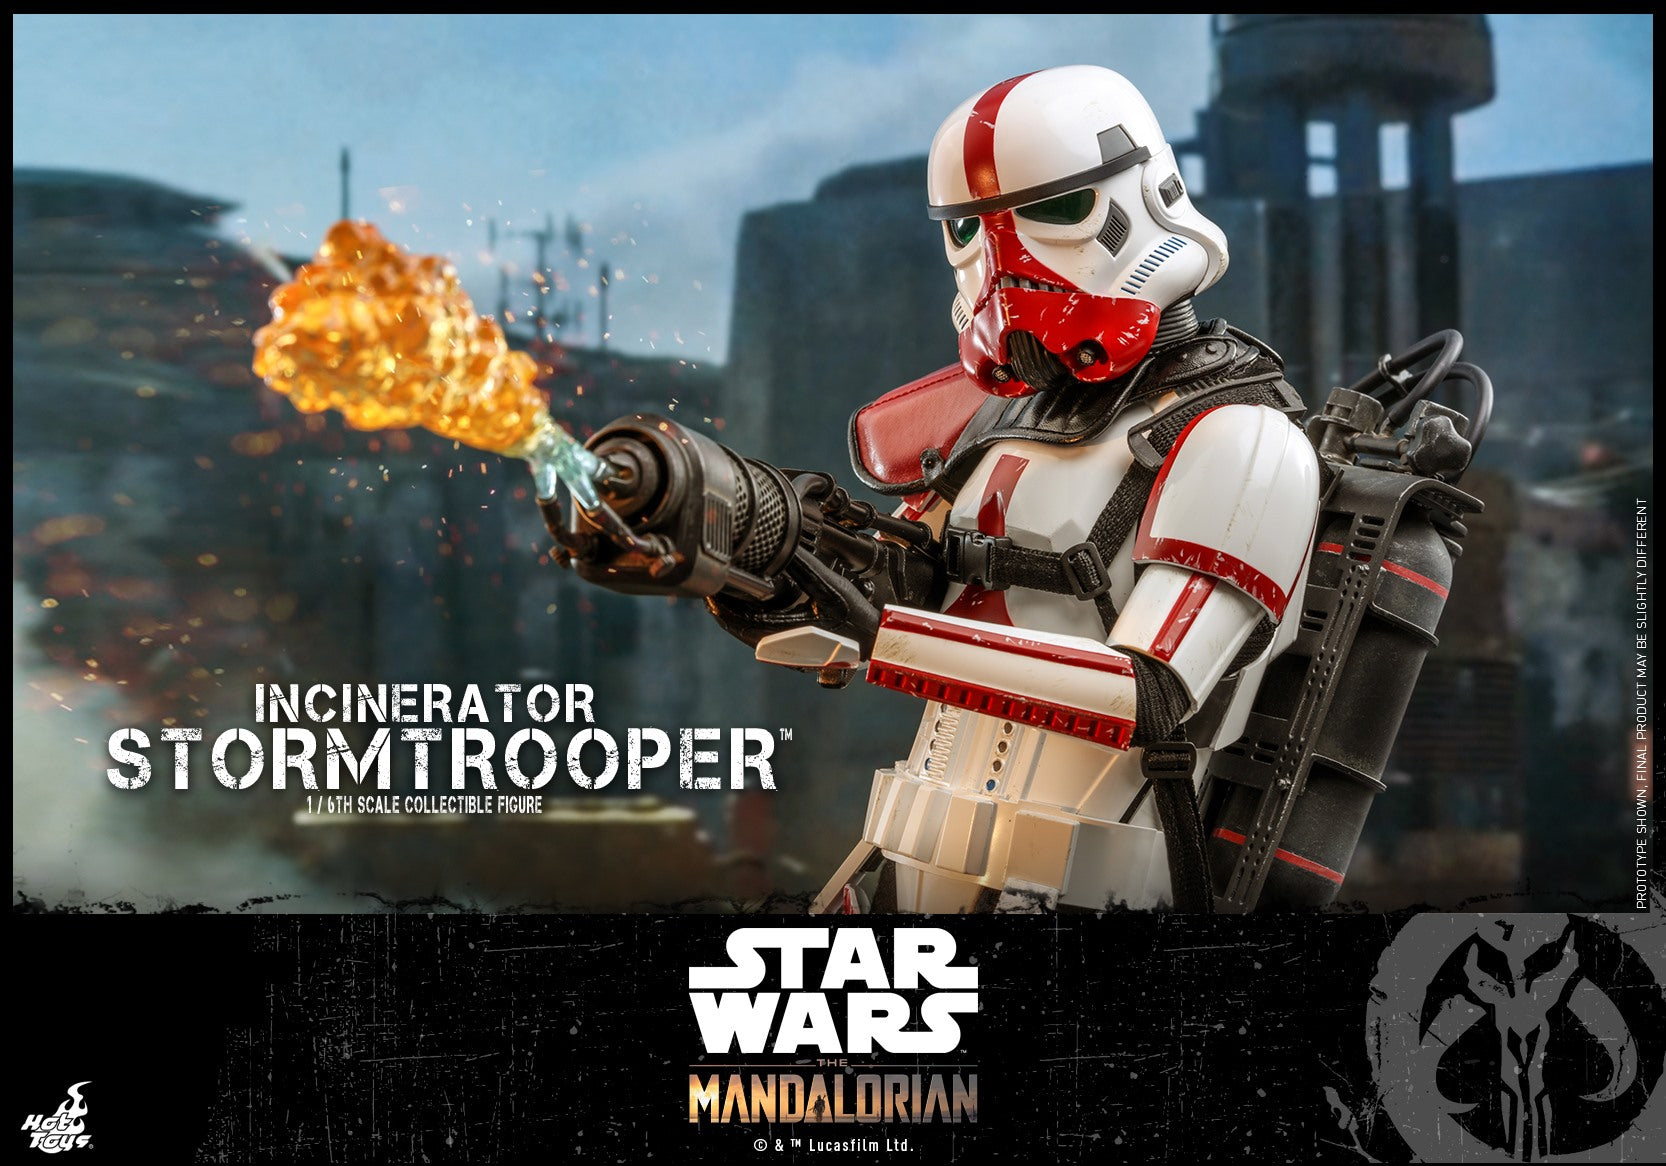 Hot Toys - TMS012 - Star Wars: The Mandalorian - Incinerator Stormtrooper